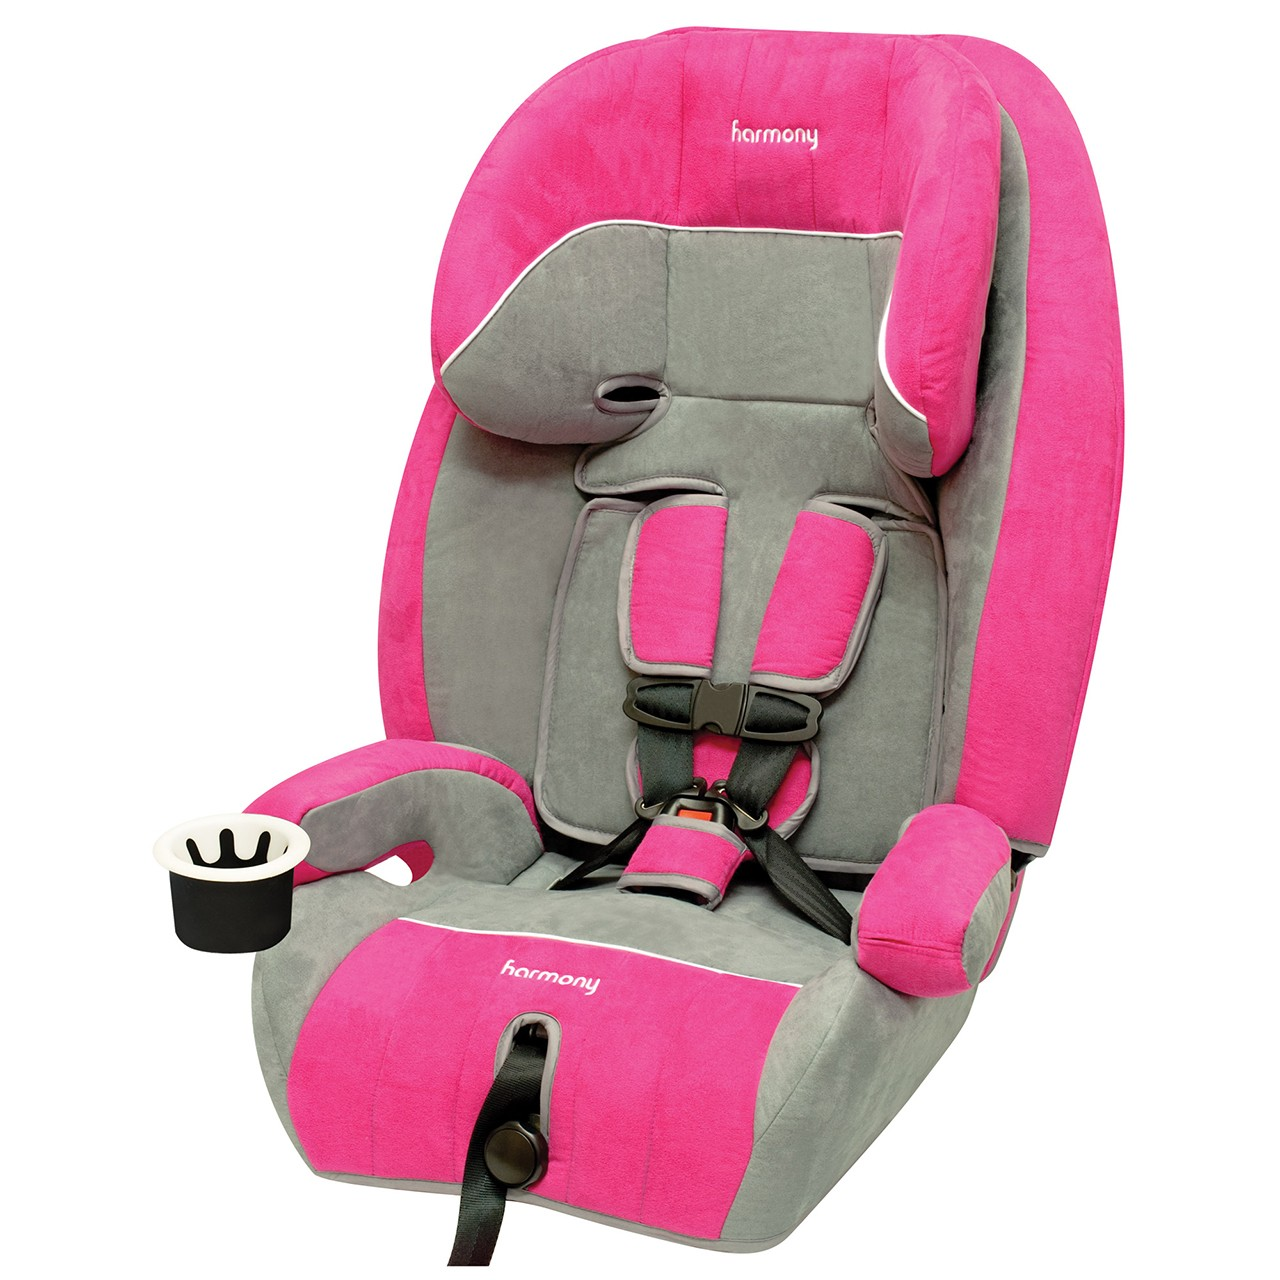 Defender 360 3 In 1 Combination Deluxe Car Seat